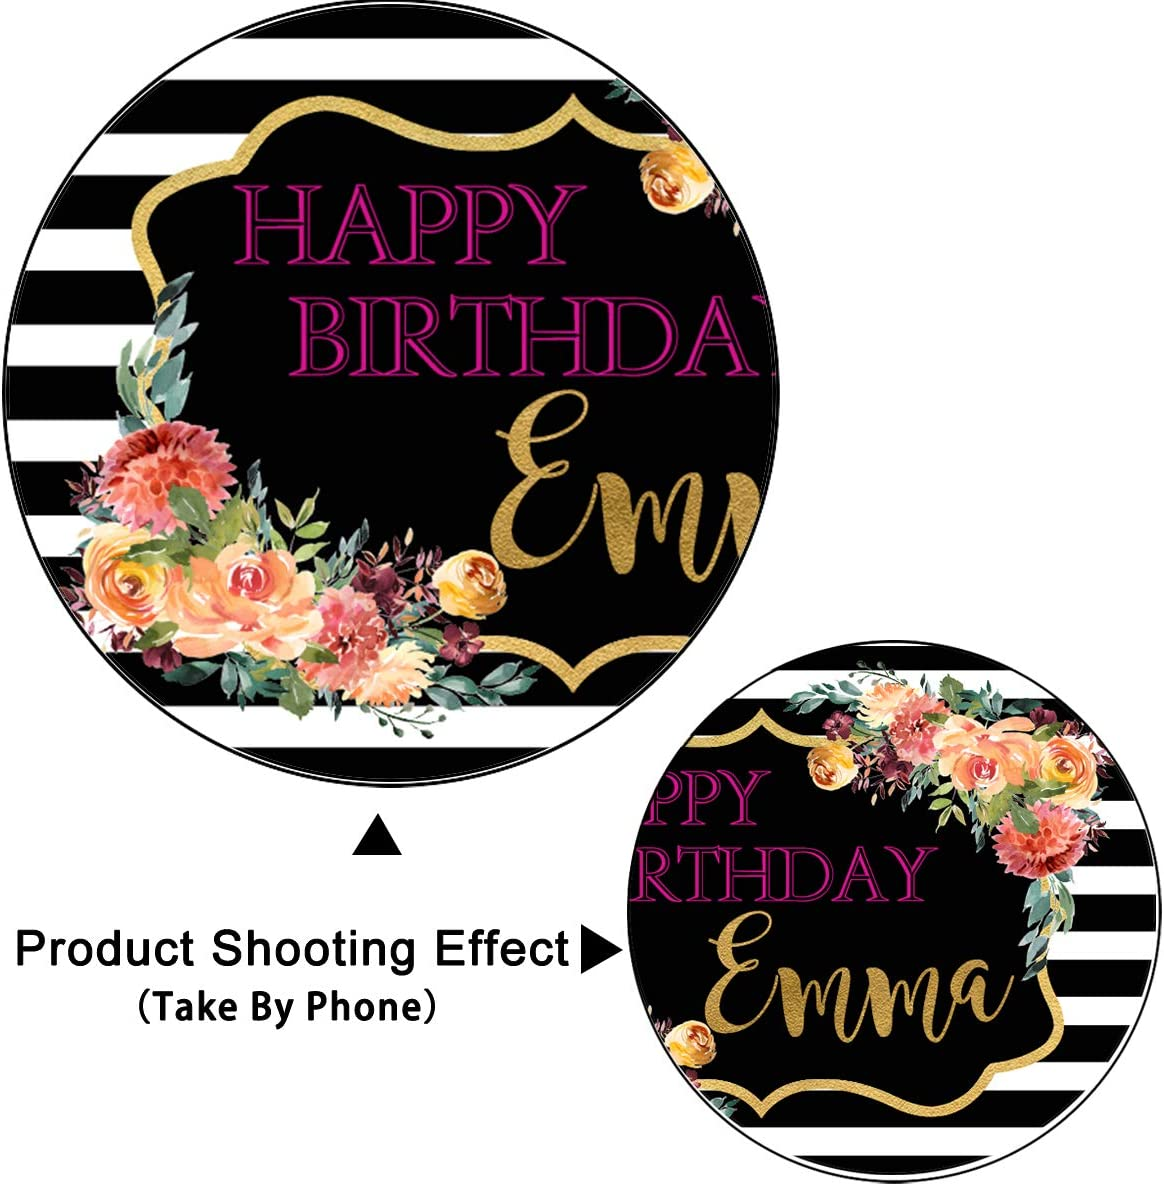 Levoo Anniversary Ceremony Background Banner Photography Studio Birthday Family Party Holiday Celebration Romantic Wedding Photography Backdrop Home Decoration Customizable Words 10x8ft,sxy1293